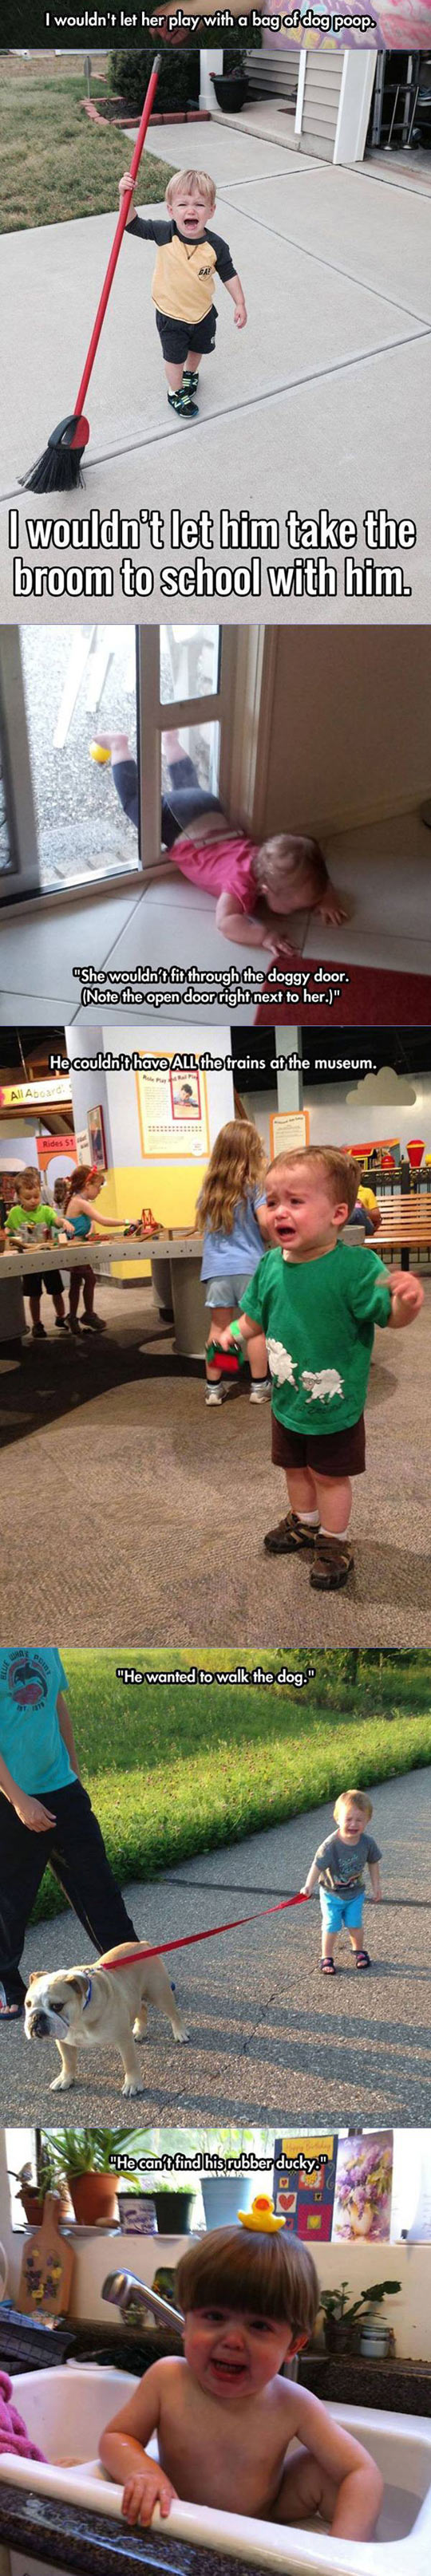 2-funny-kids-crying-for-ridiculous-reasons-broom